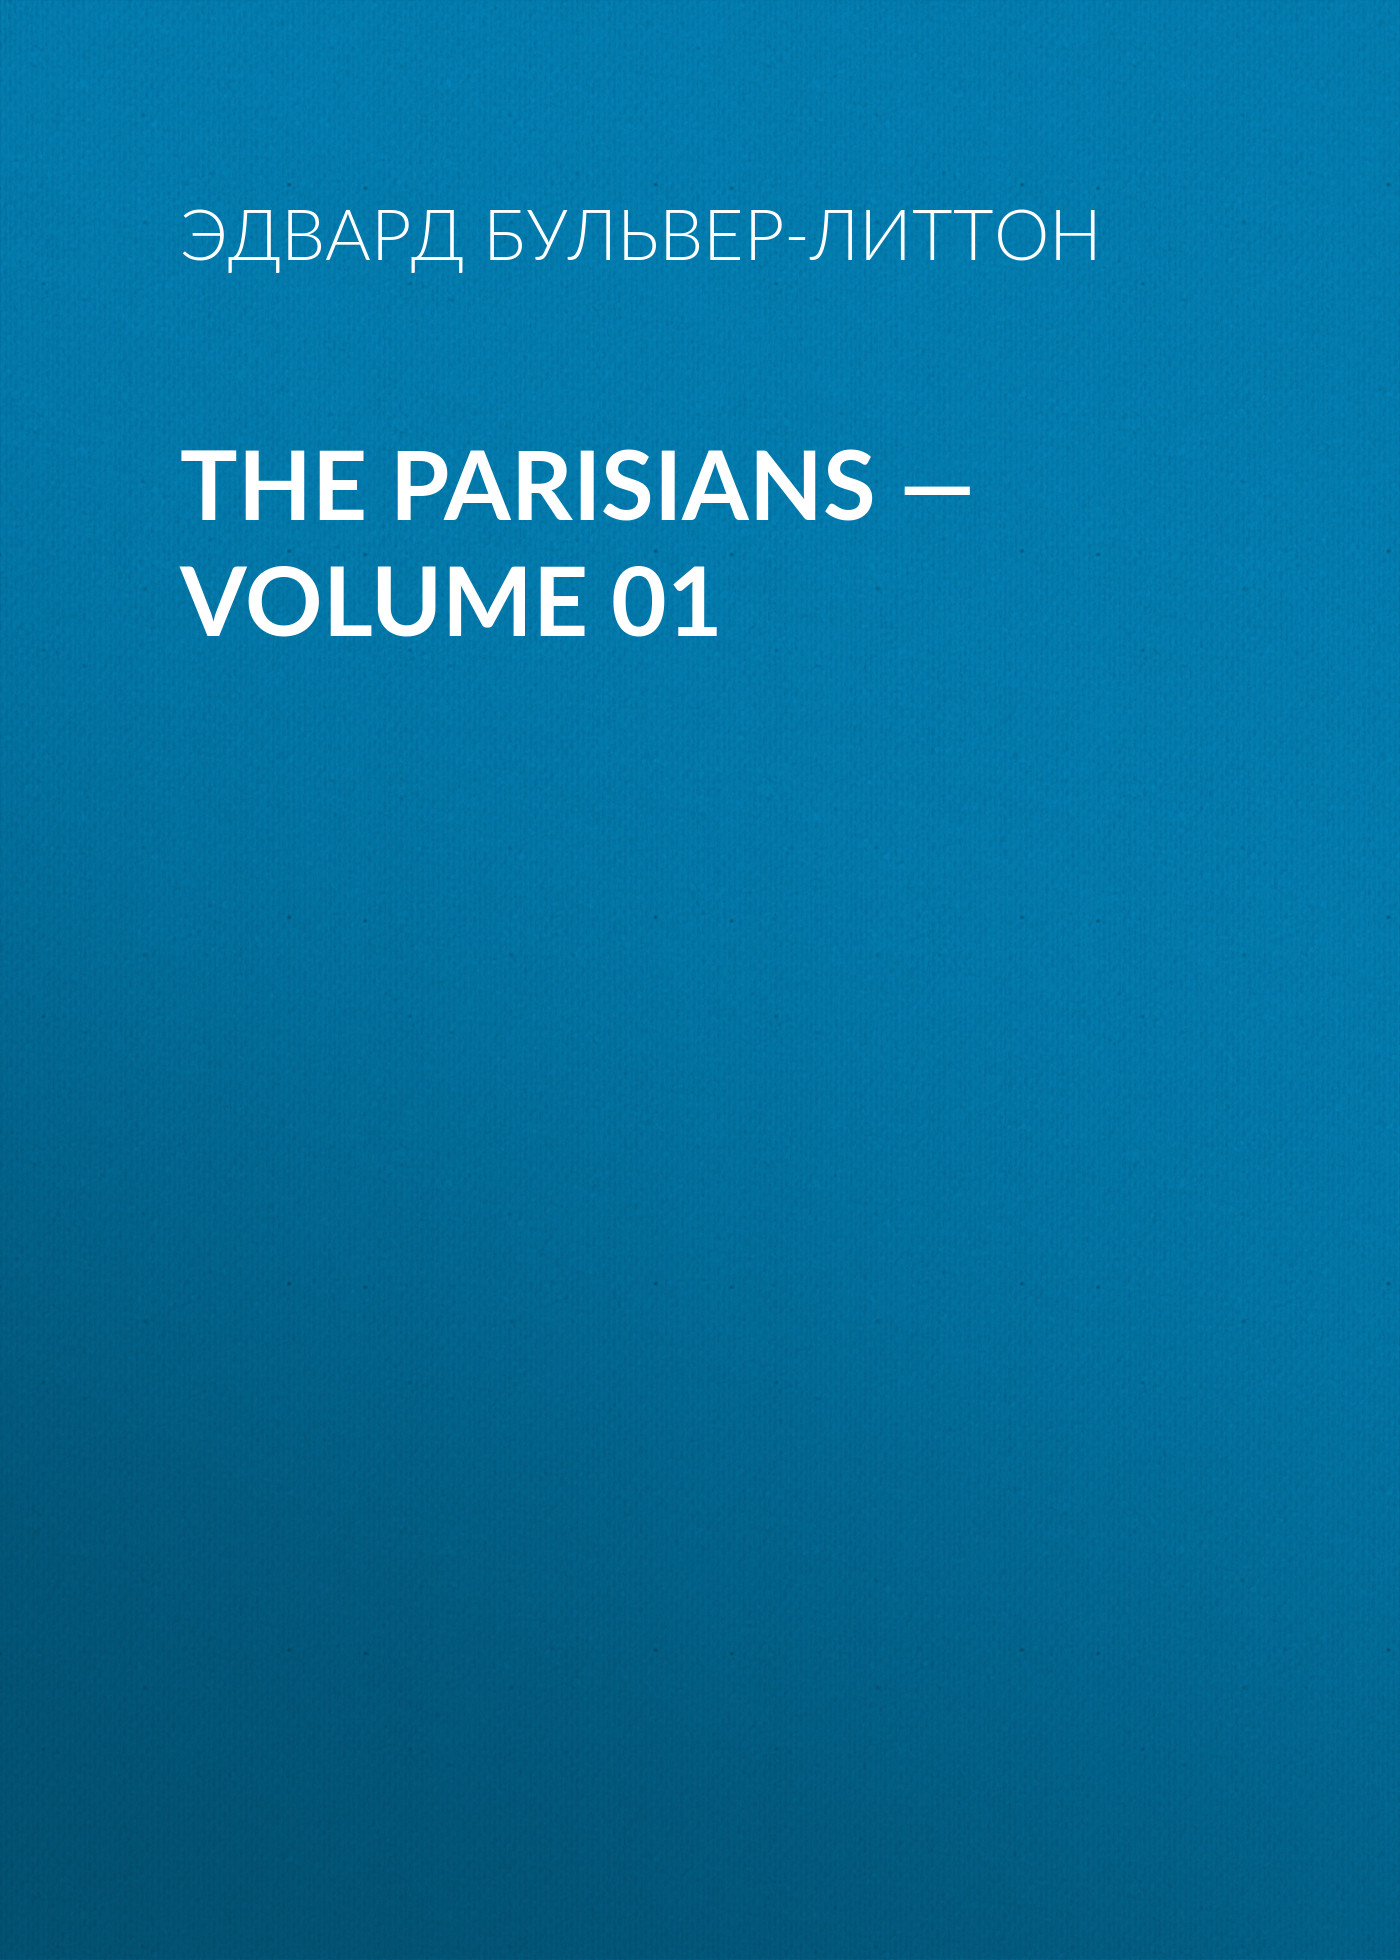 Эдвард Бульвер-Литтон The Parisians — Volume 01 щипцы vitek vt 2508 bk